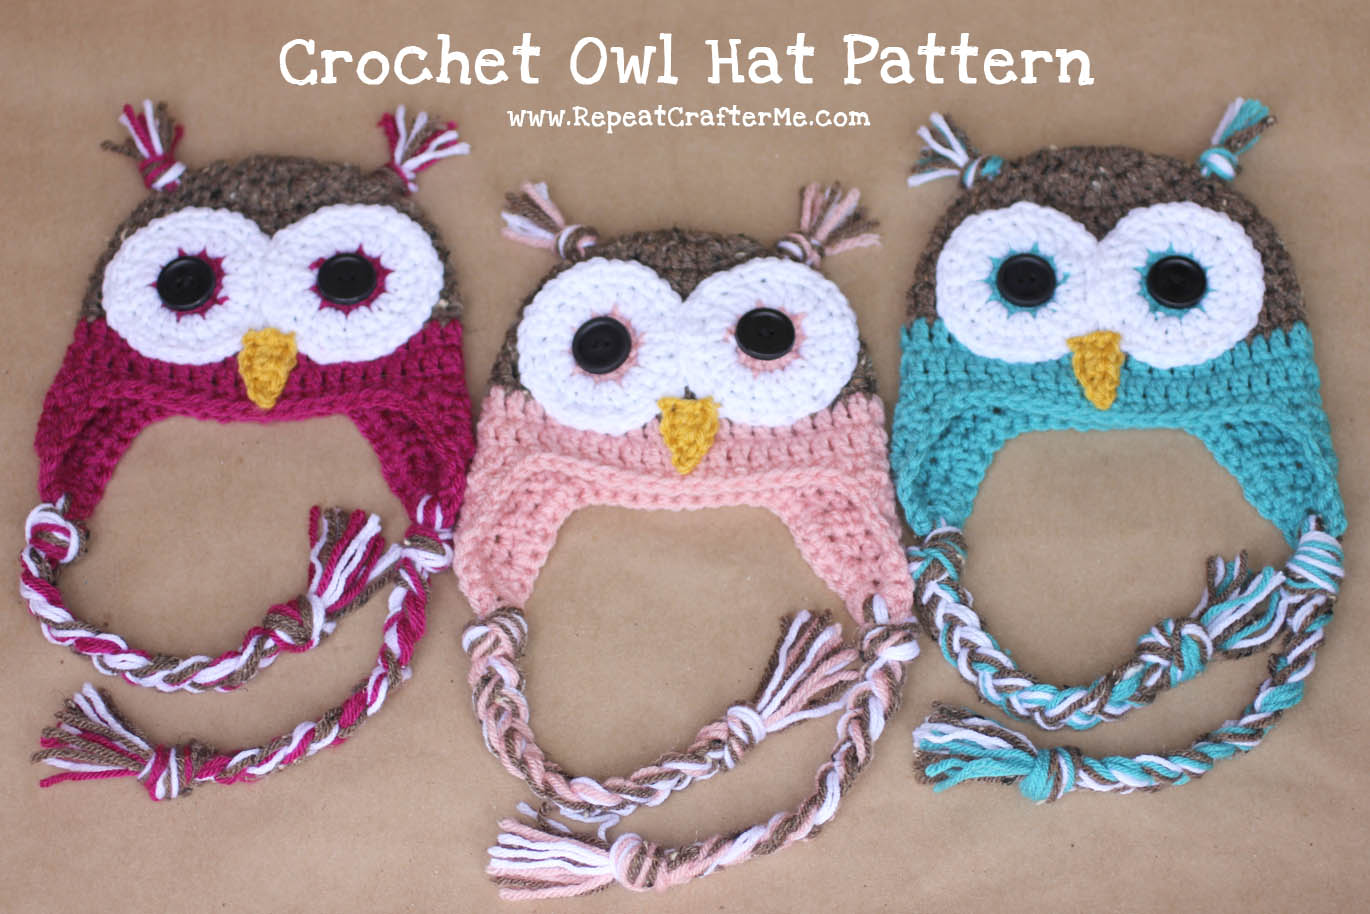 Crochet Pattern For Newborn Owl Hat : Crochet Owl Hat Pattern - Repeat Crafter Me